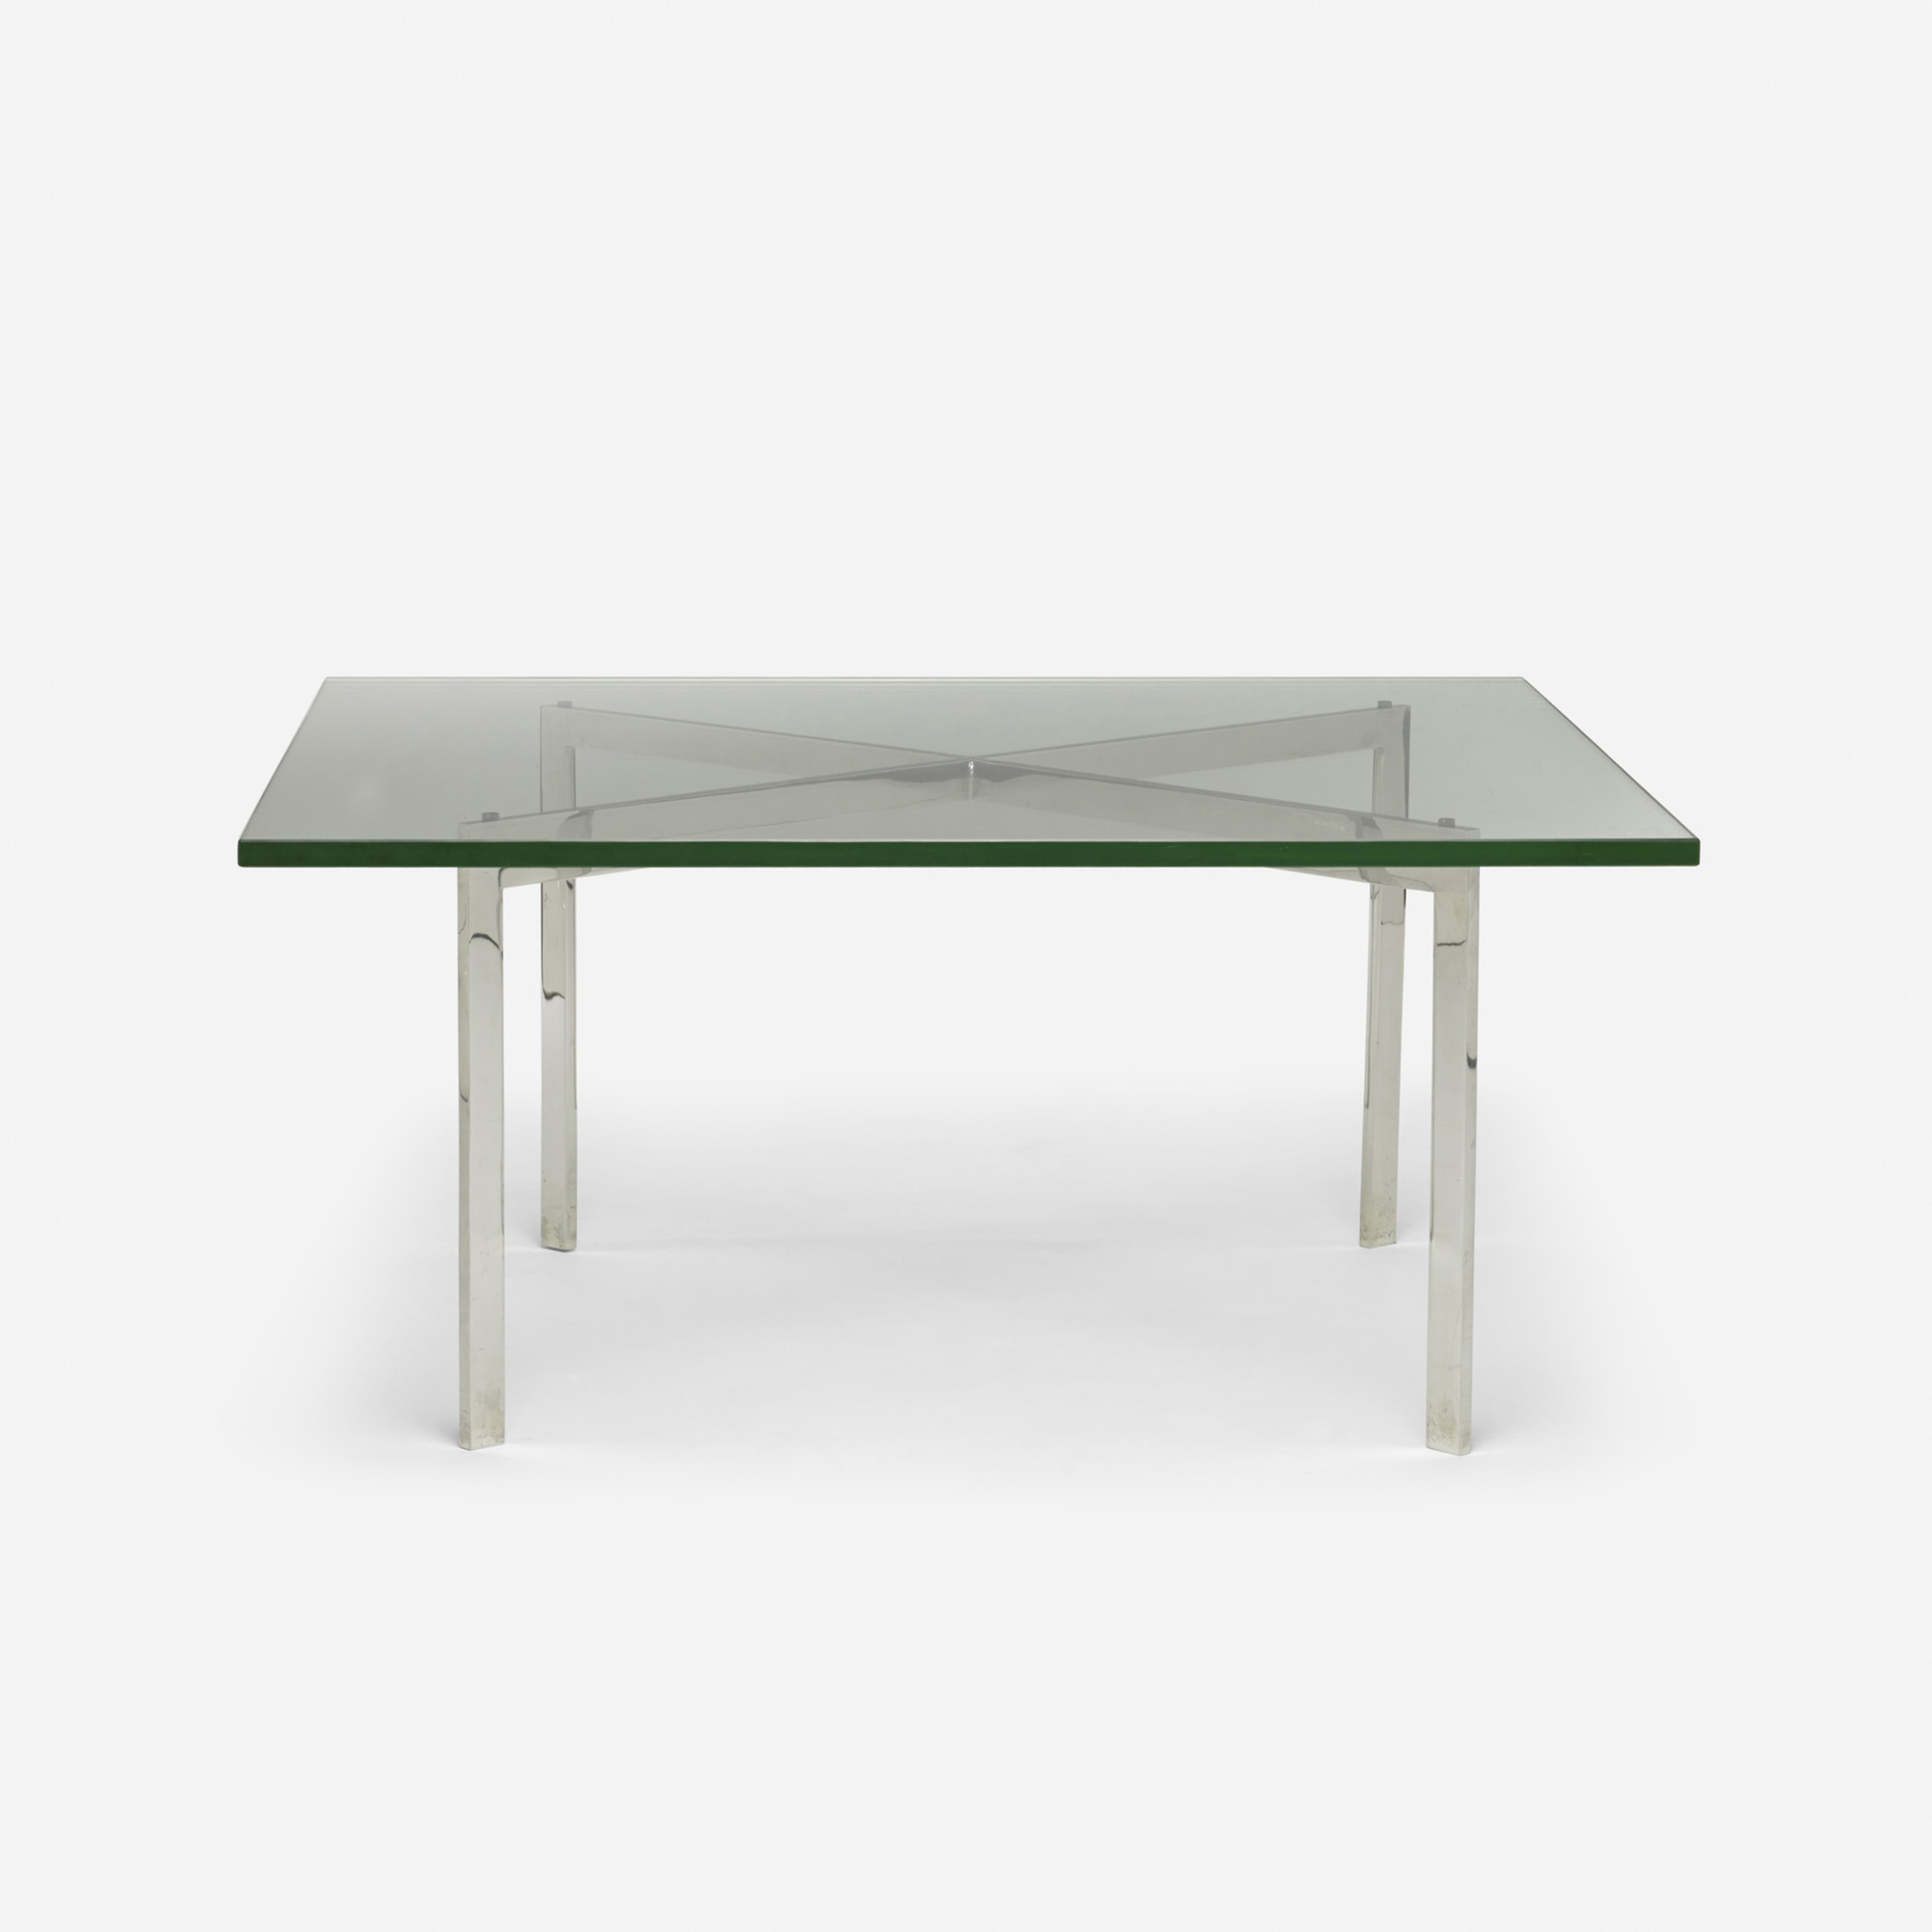 103 Ludwig Mies van der Rohe Barcelona table from the entrance